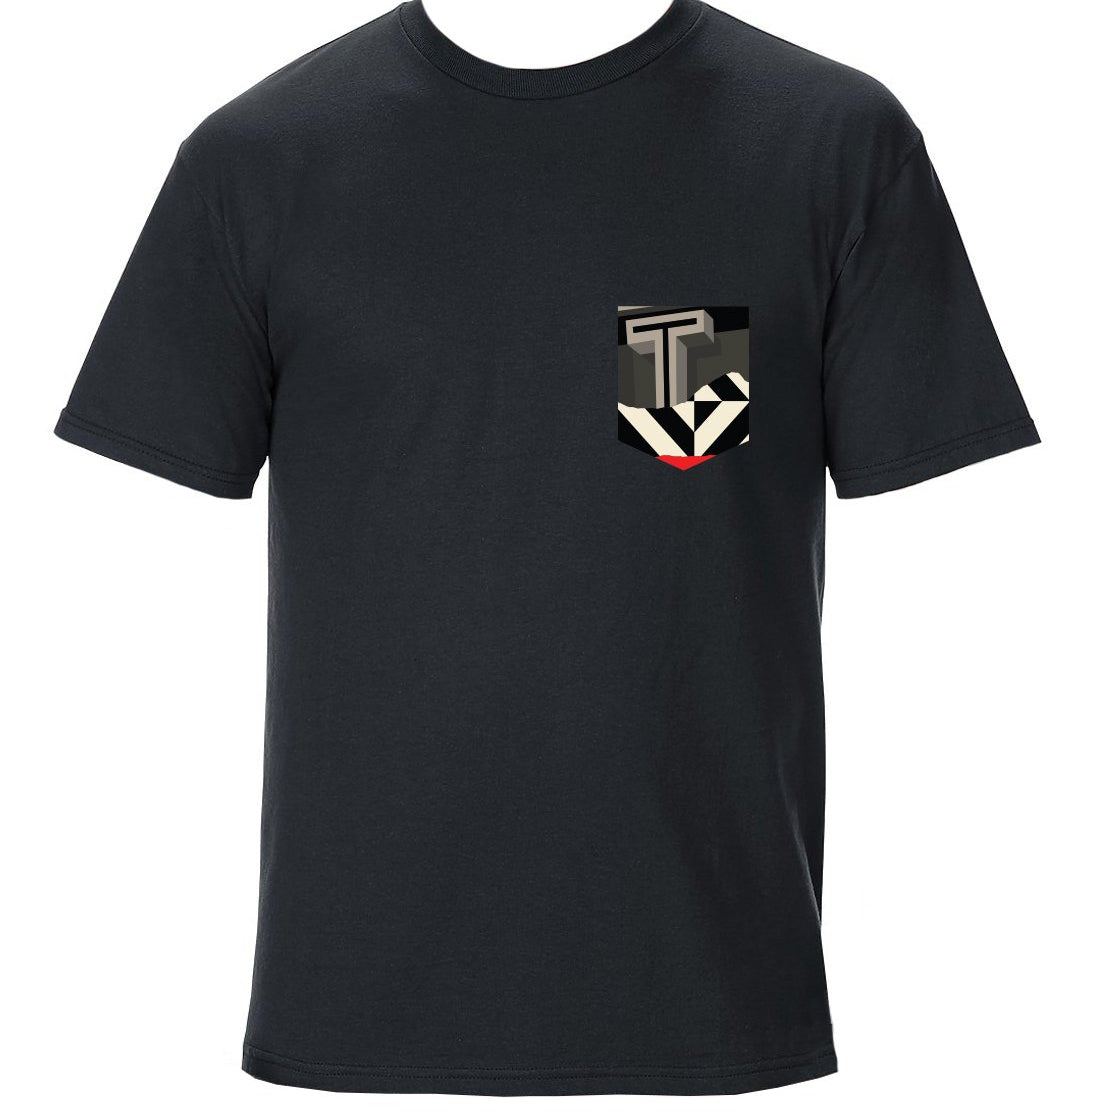 TRAV MSK LIMITED EDITION POCKET T-SHIRT (BLACK / RED T GRAPHIC)